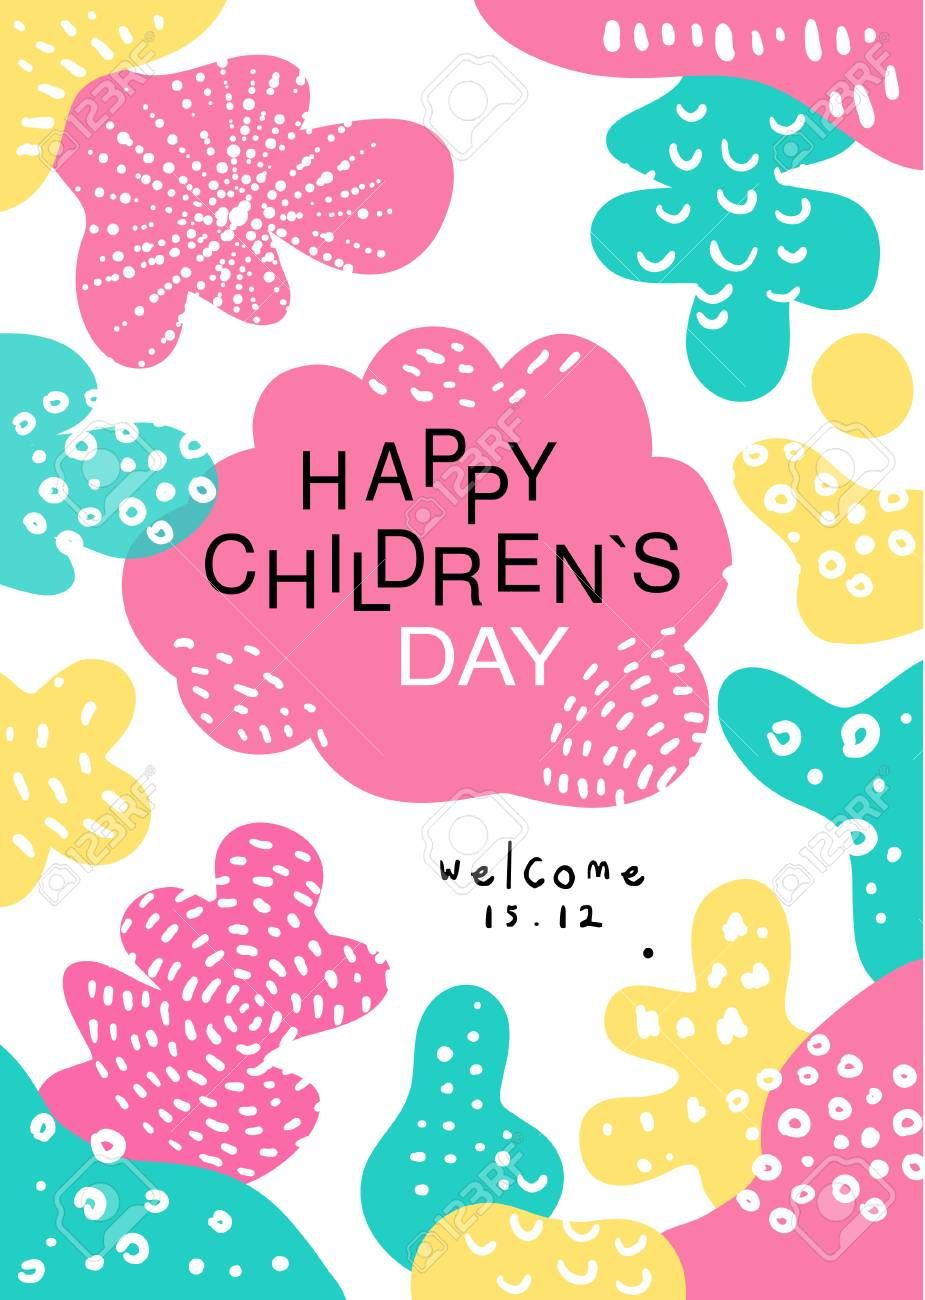 Happy Childrens Day Poster With Date Template Can Be Used For Placard Invitation Banner Card Flyer Vecto Happy Children S Day Logo Design Typography Flyer